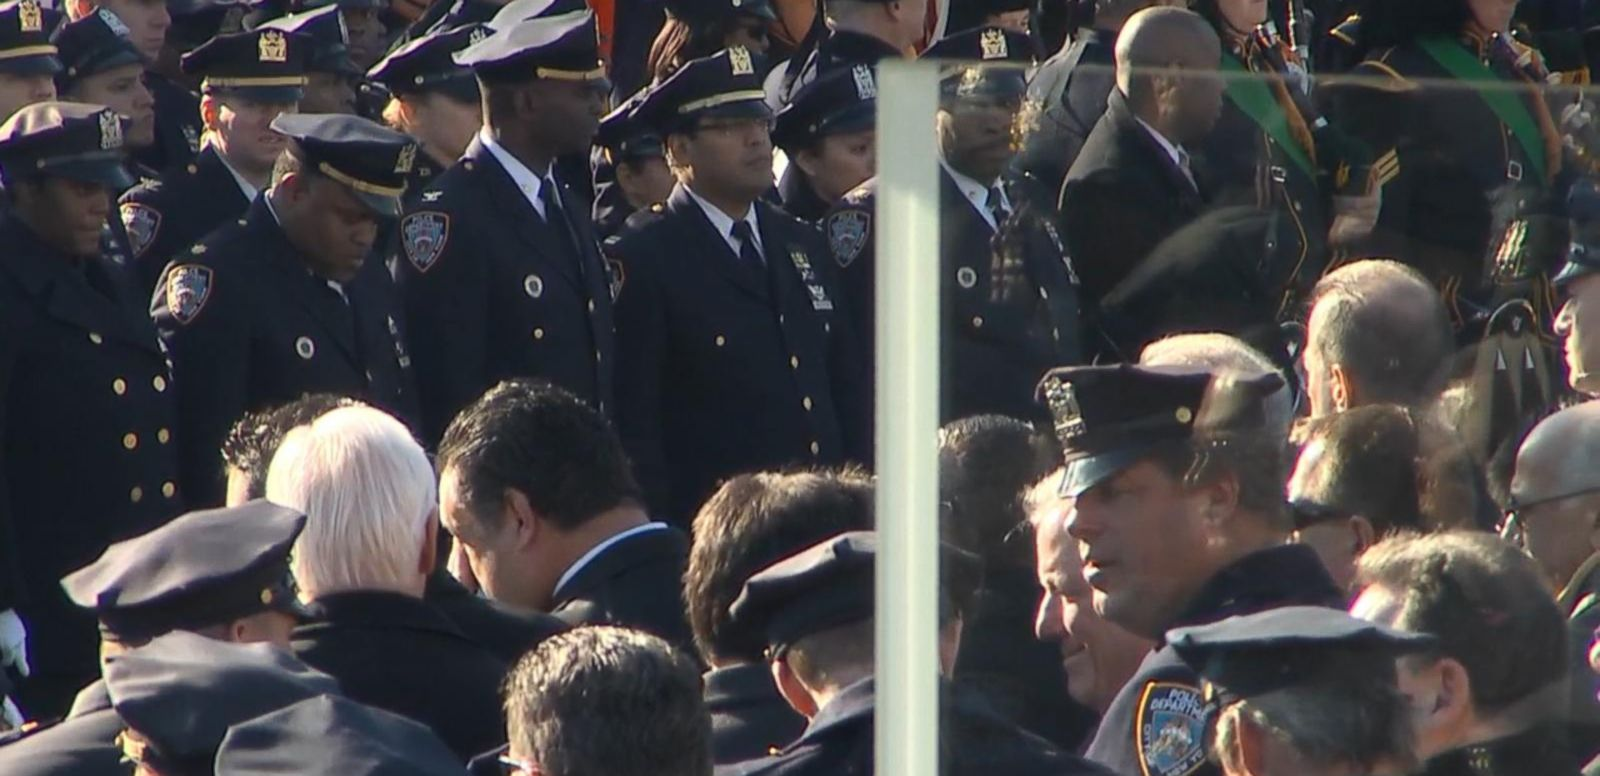 VIDEO: Casket Leaves Church After Funeral for NYPD Officer